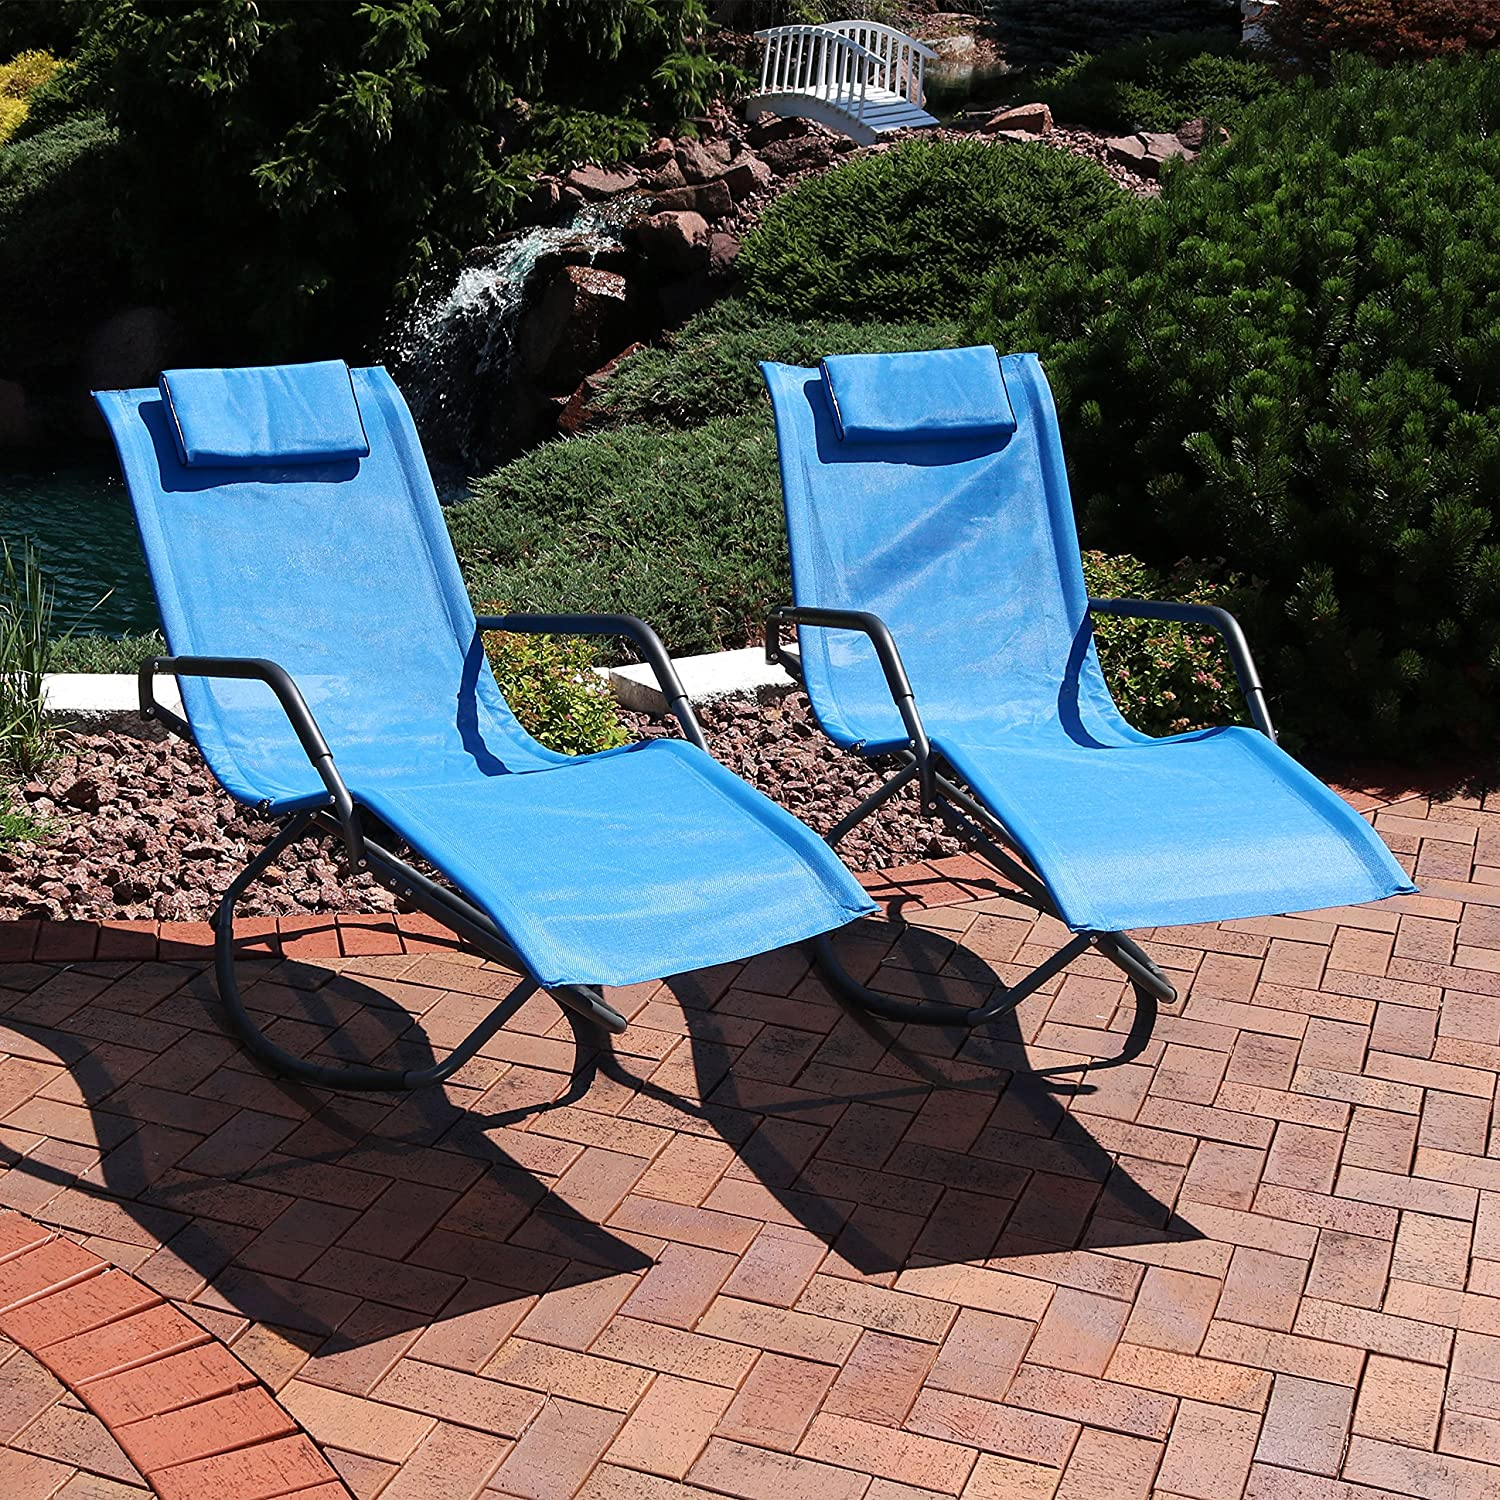 Sunnydaze Rocking Chaise Lounge Chair with Headrest Pillow, Outdoor Folding Patio Lounger, Blue, Set of 2